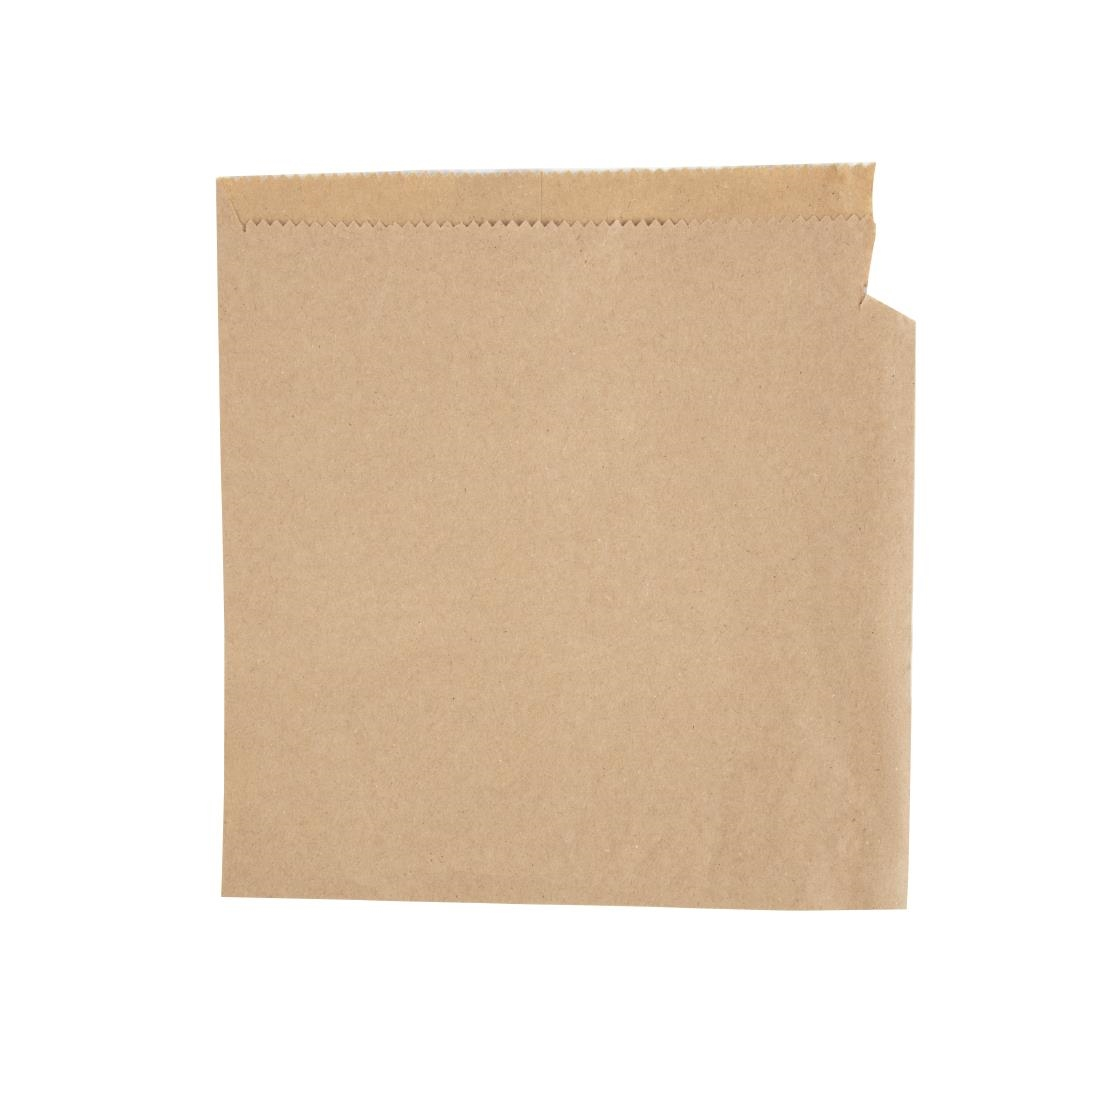 Fiesta Small Paper Bags Pack Of 1000